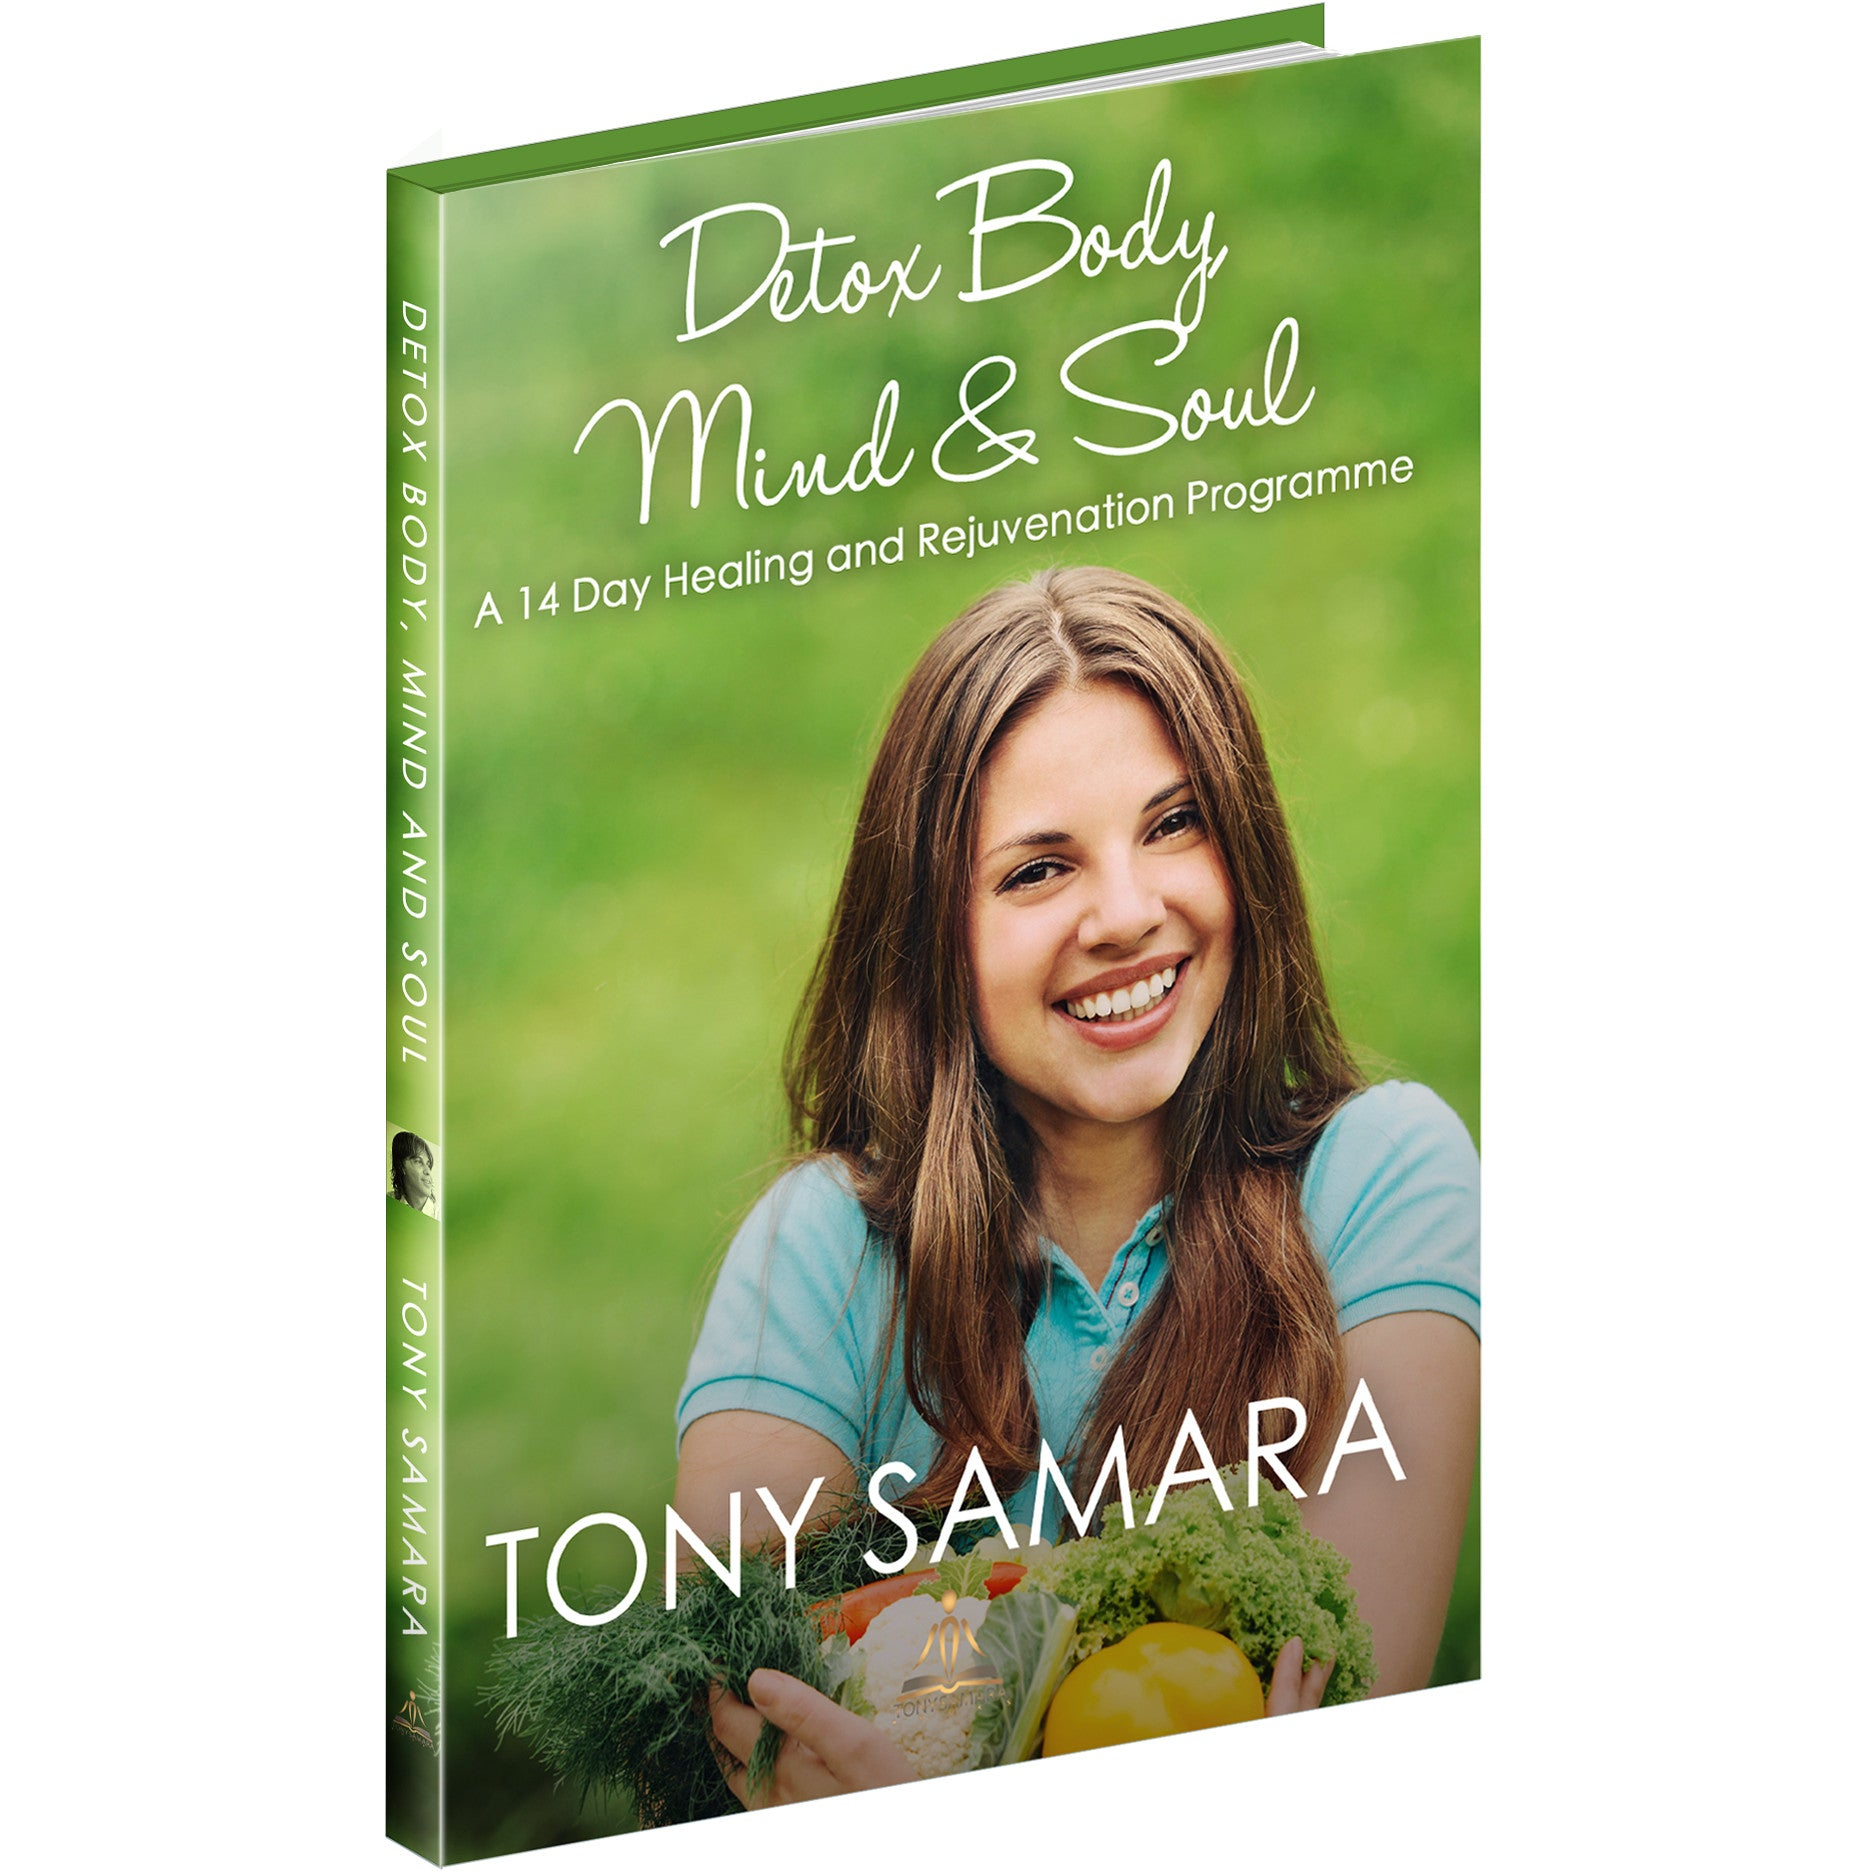 Detox Body, Mind and Soul, an e-Book by Tony Samara (ePUB Download) - Tony Samara Meditation